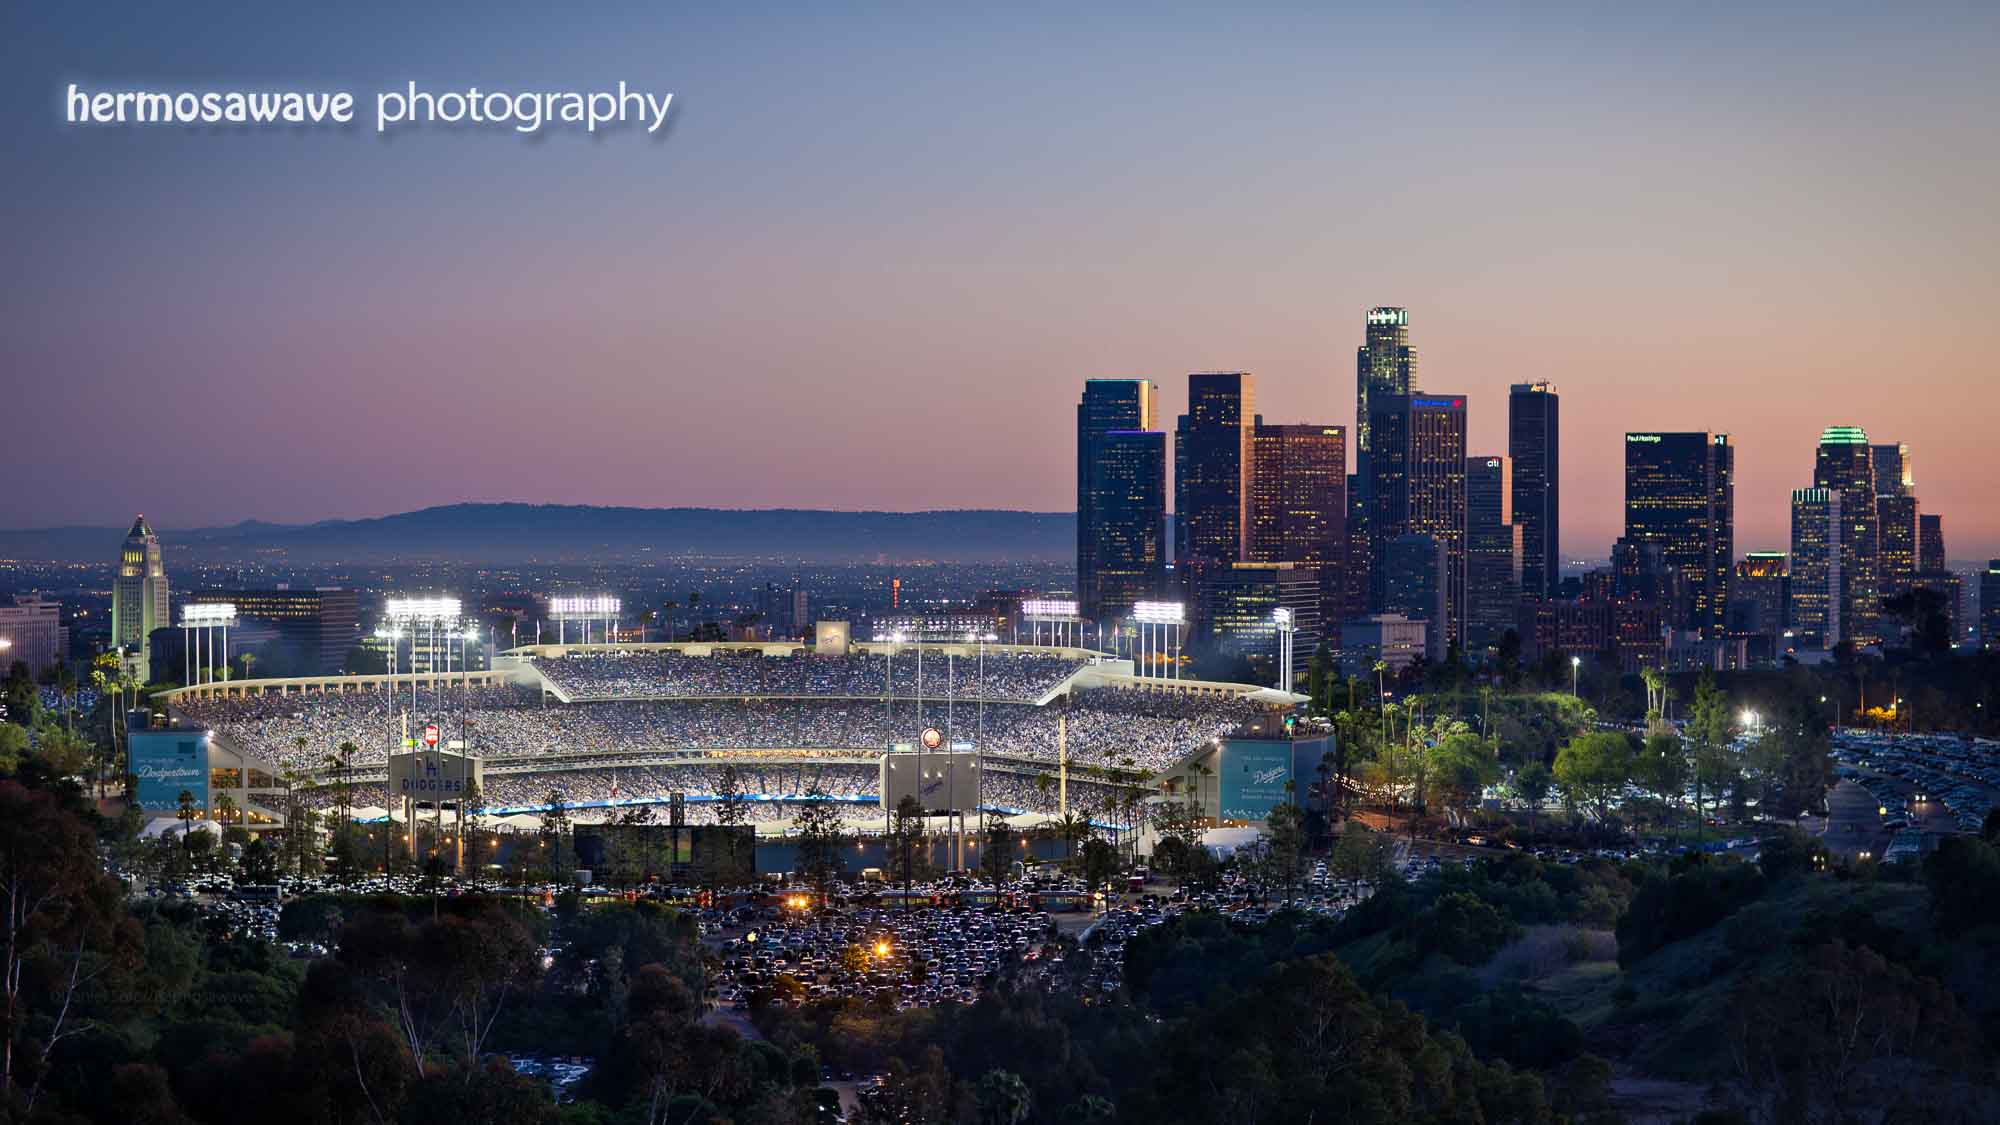 Opening Day At Dodger Stadium